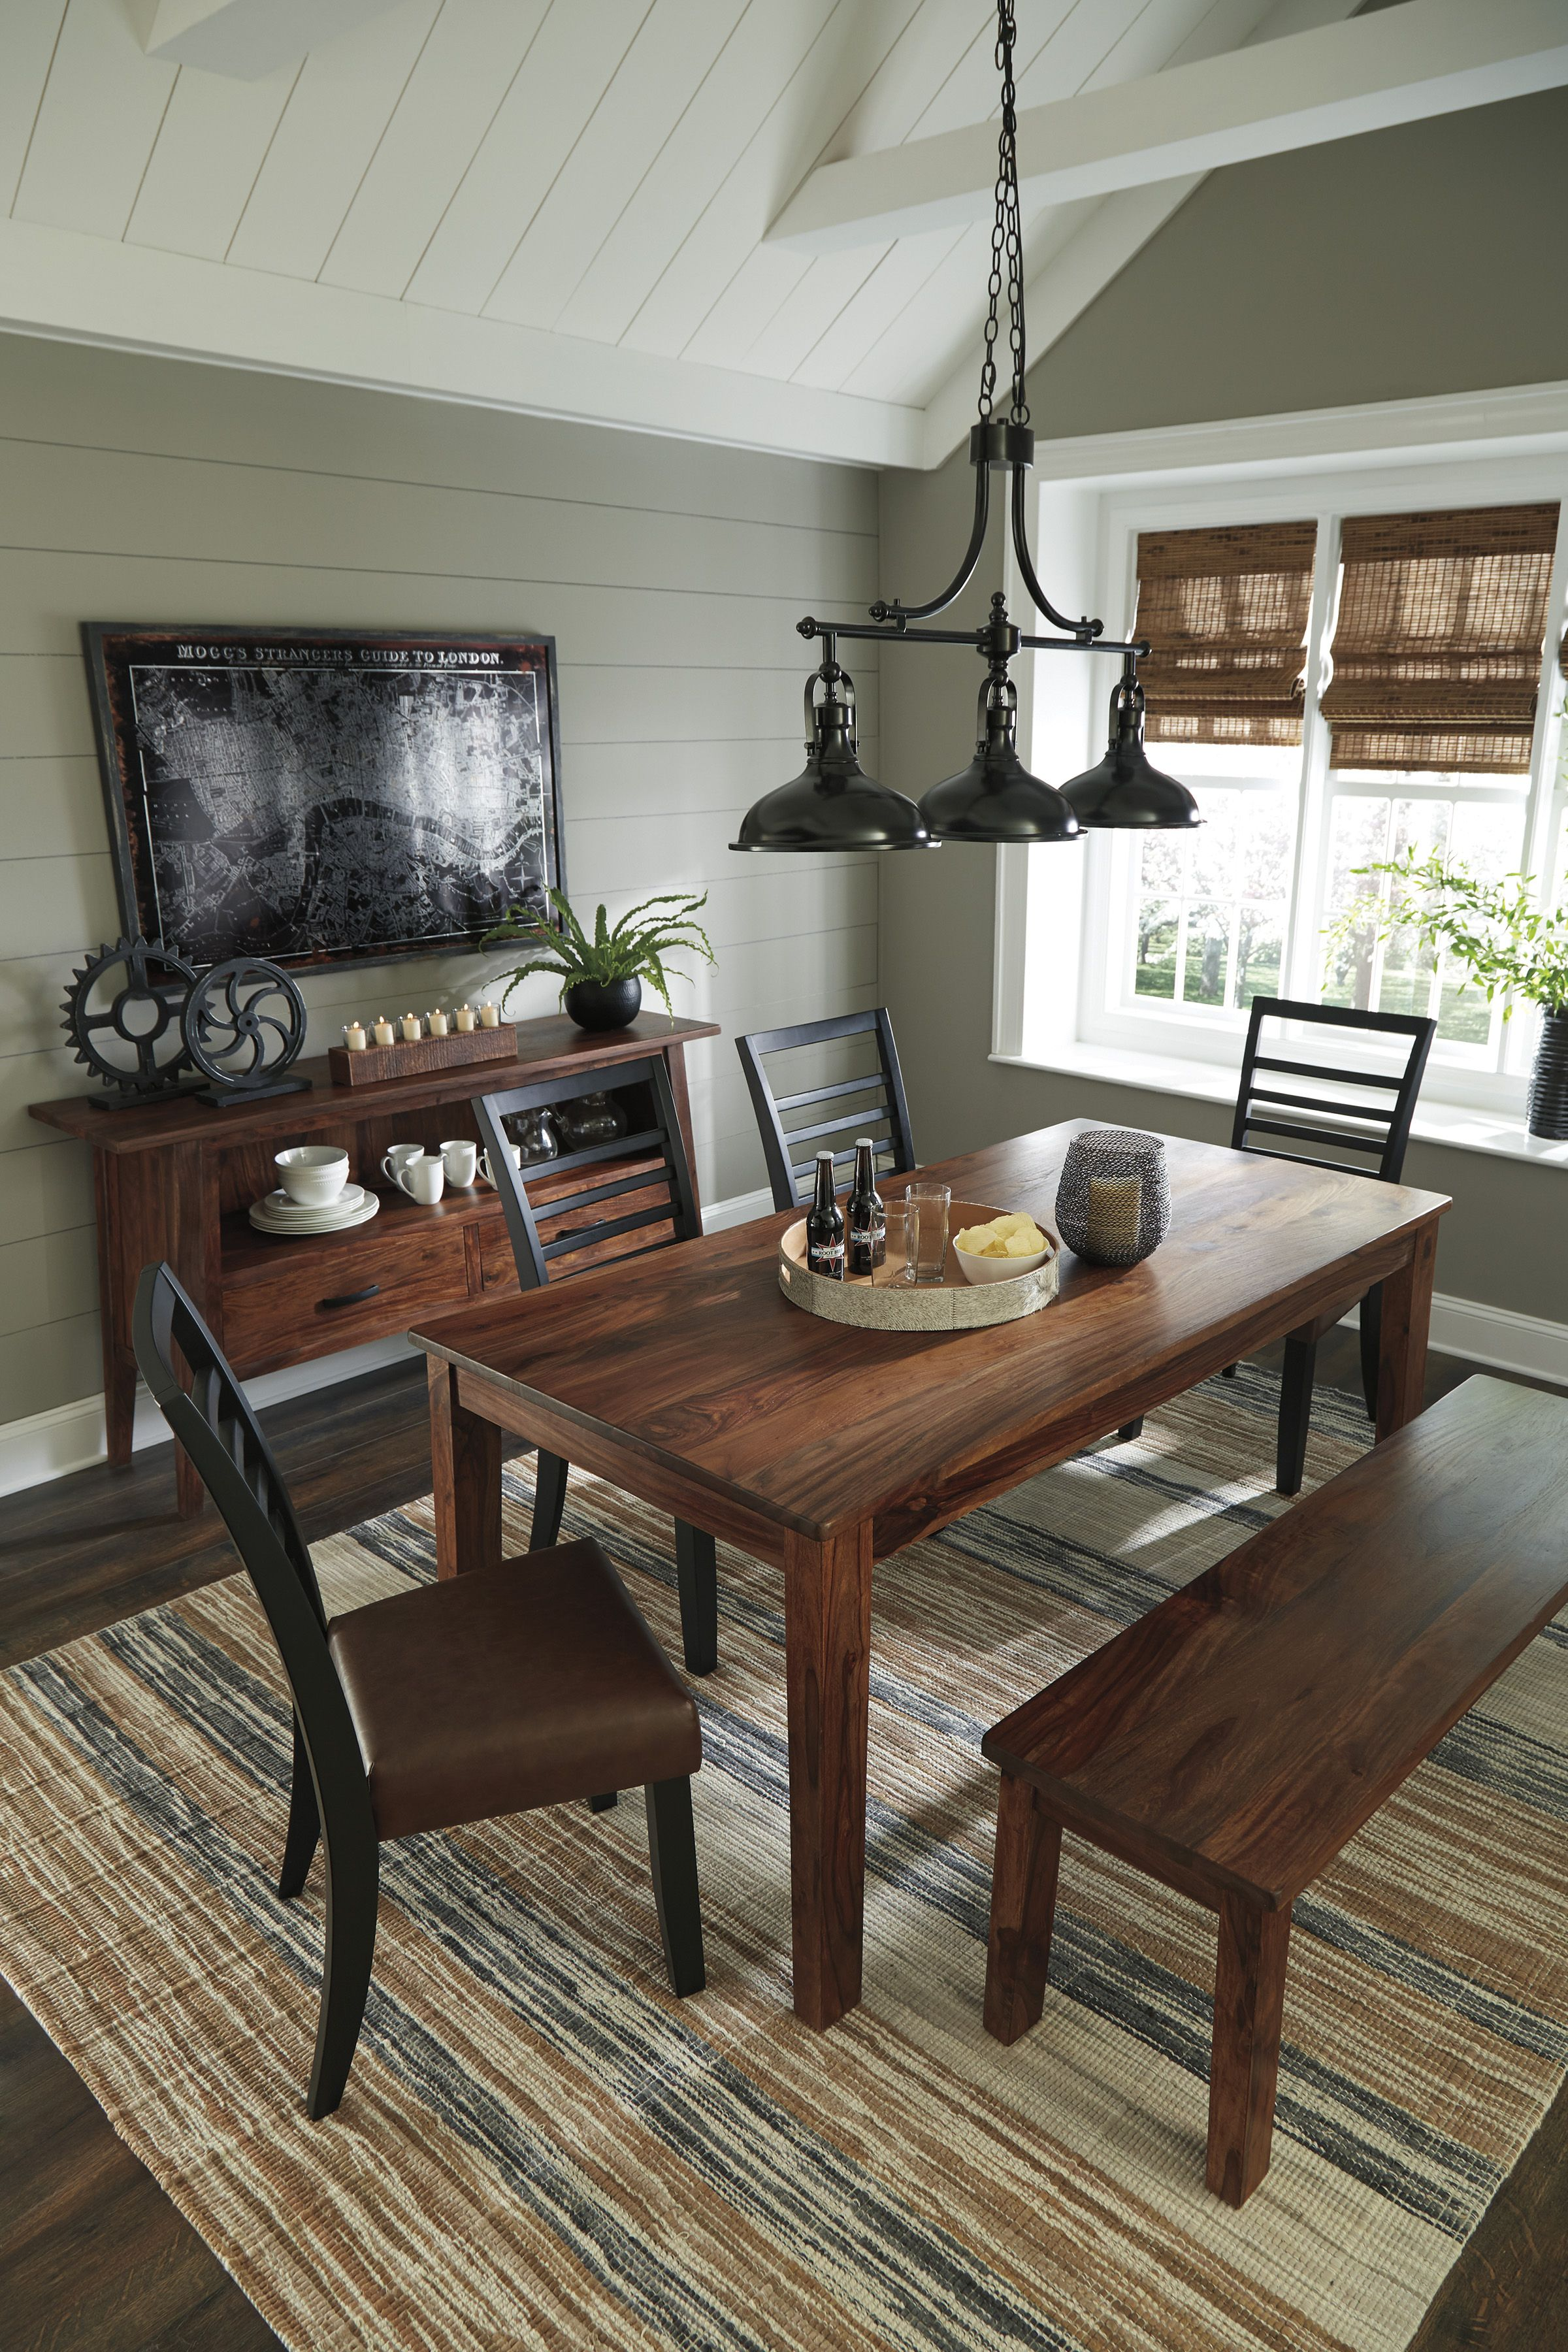 The manishore casual dining set is gorgeous with its dark wood